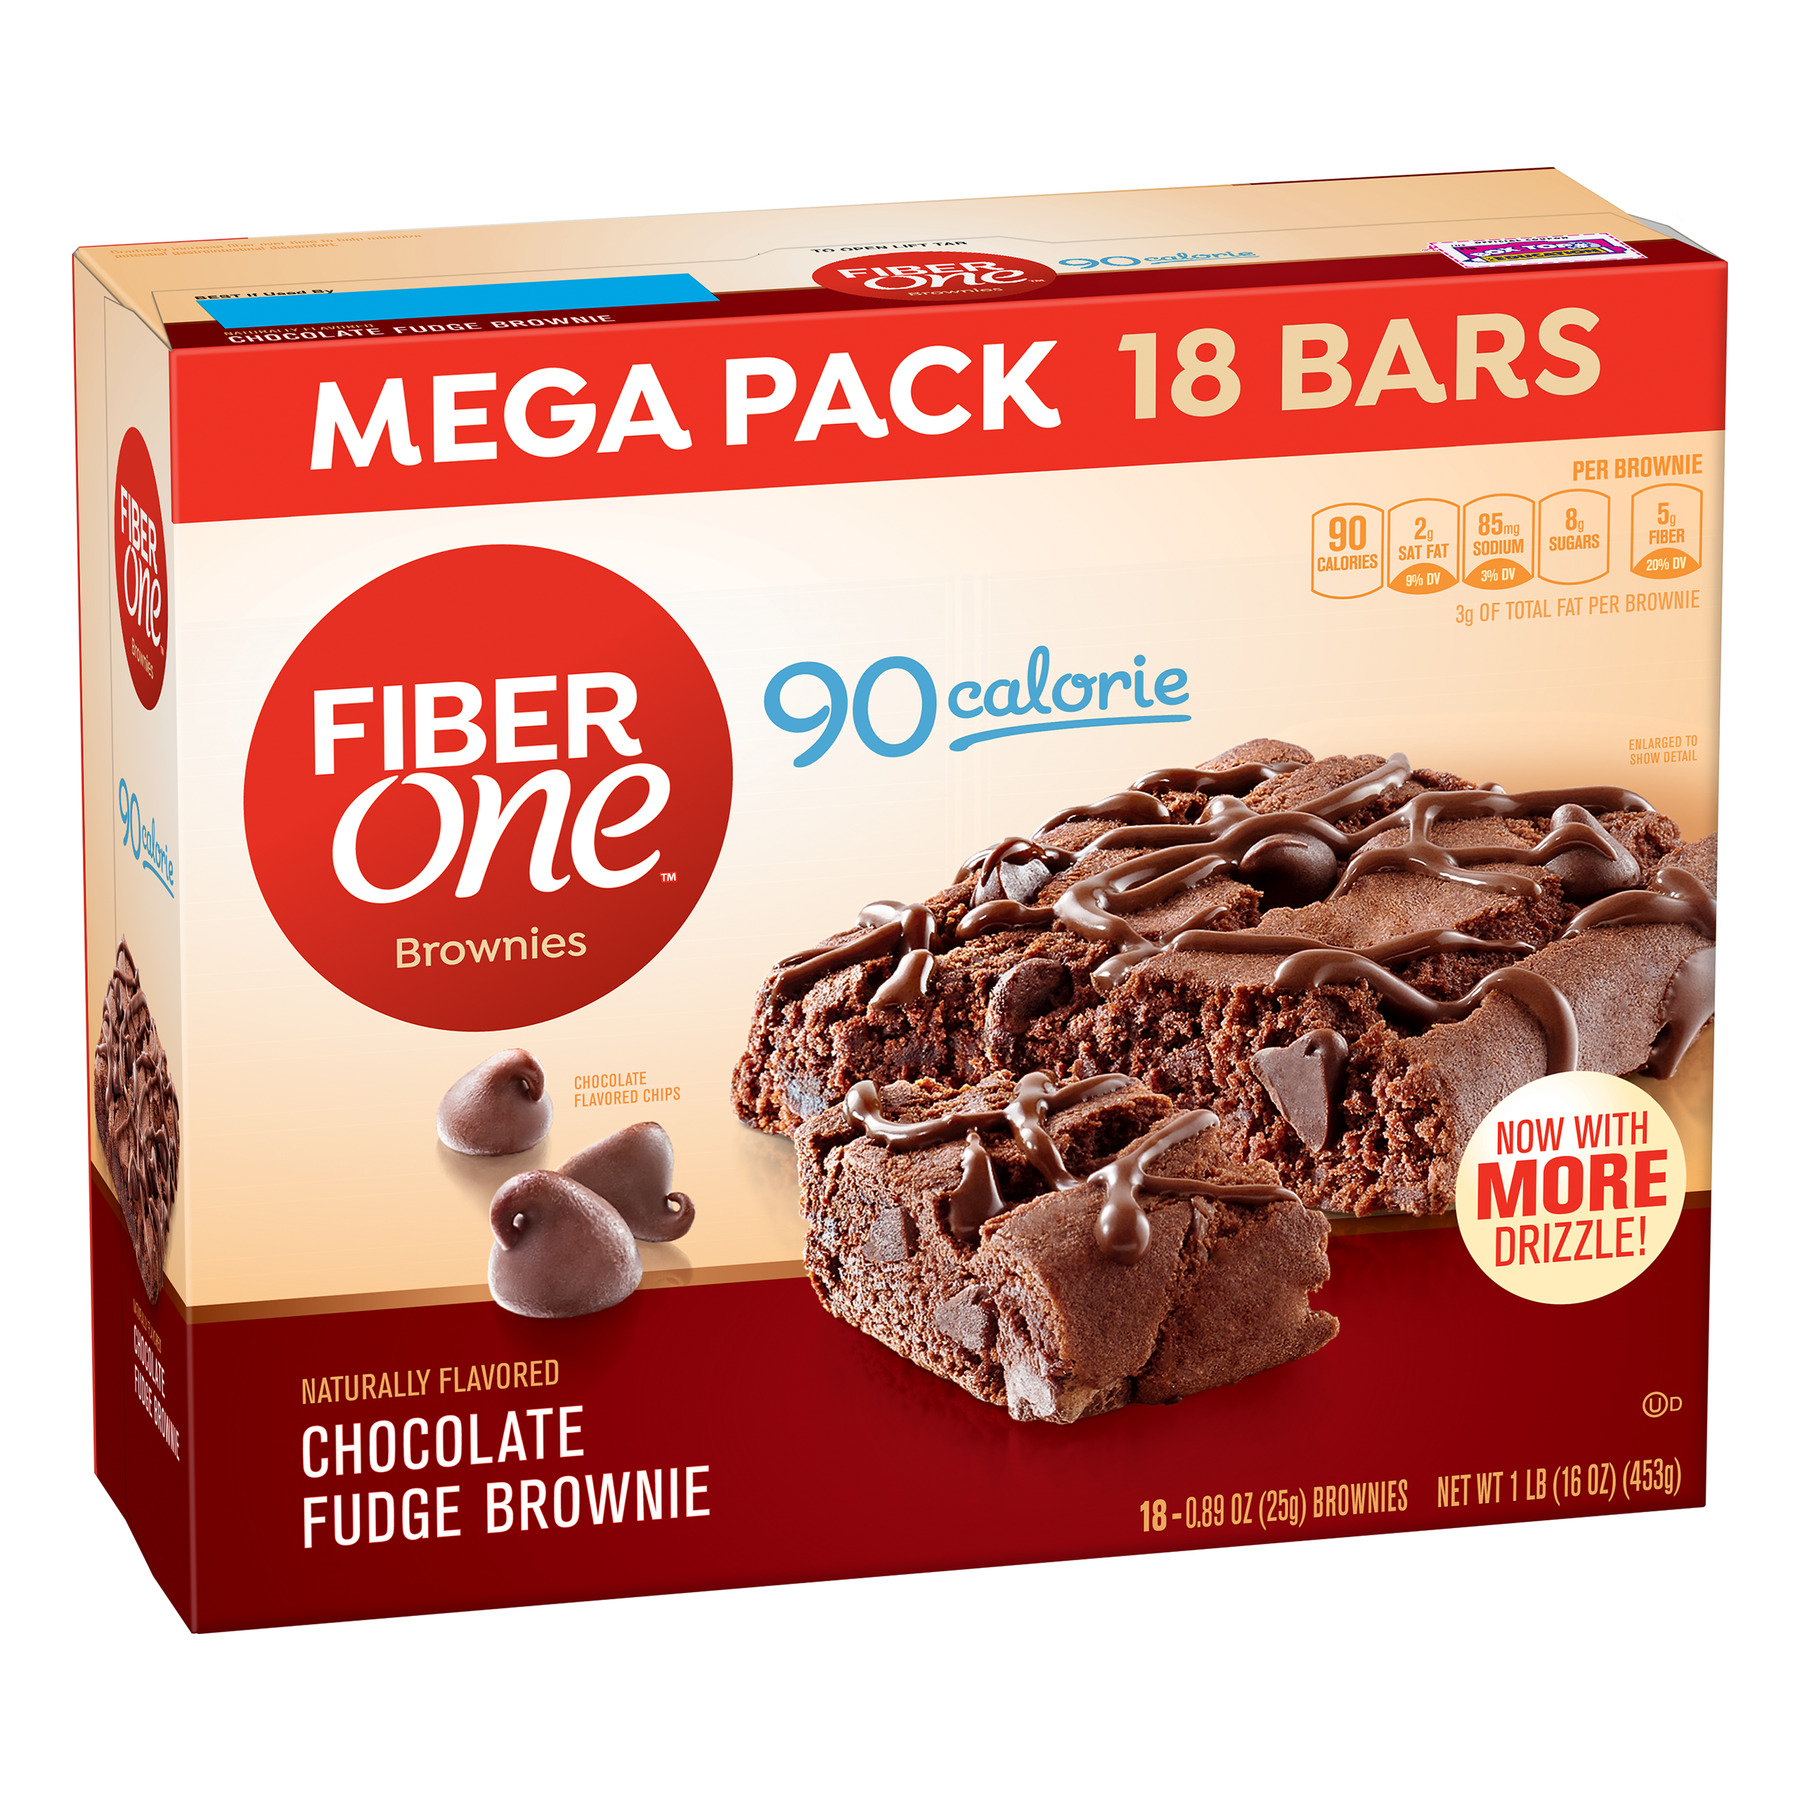 Fiber One 90 Calorie Chocolate Fudge Brownie Mega Pack 18  Bars 16 oz